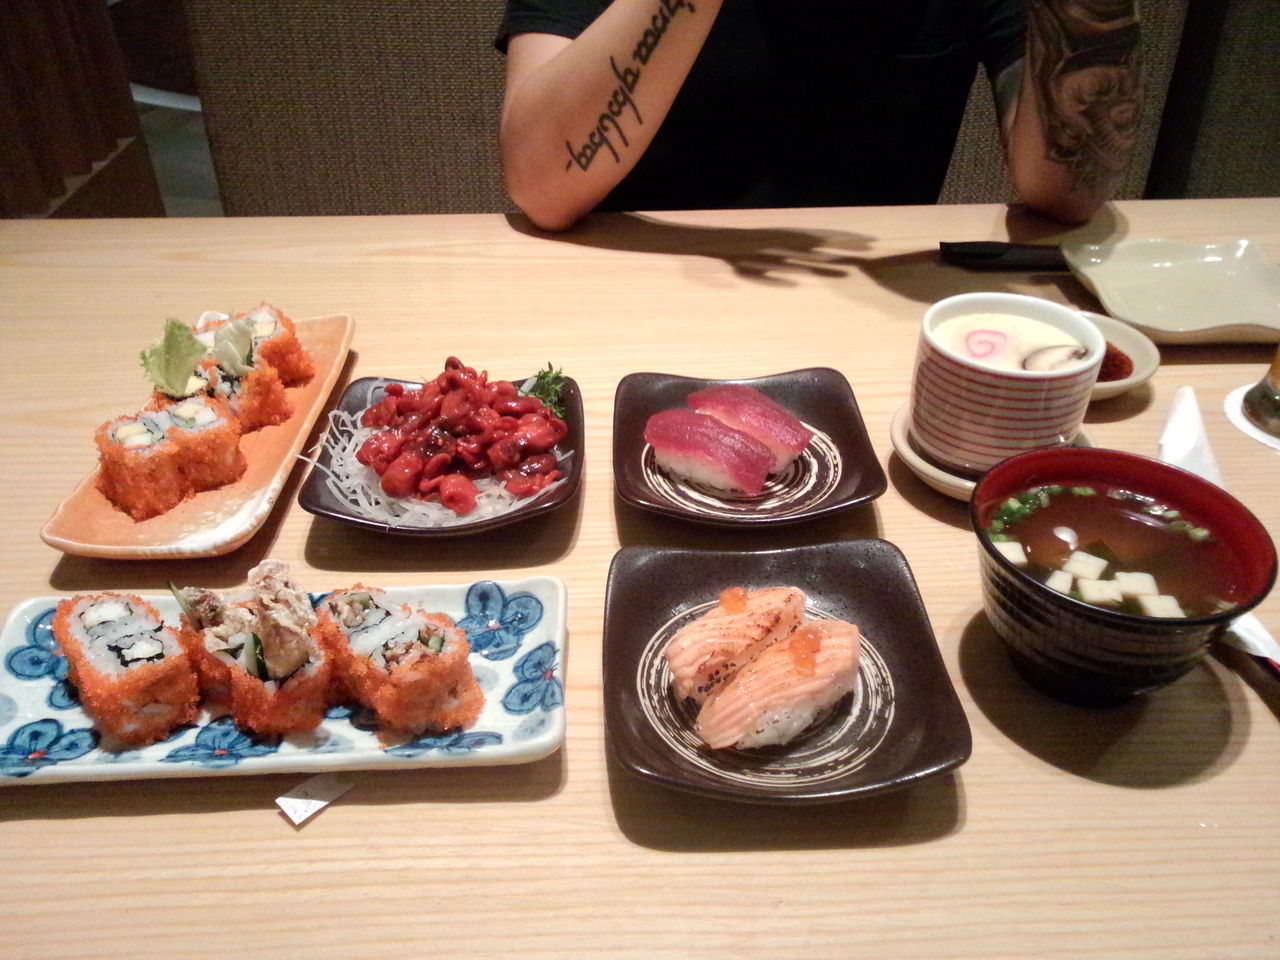 food, food and drink, plate, freshness, table, seafood, indoors, real people, ready-to-eat, variation, serving size, meat, one person, healthy eating, high angle view, bowl, meal, sushi, day, close-up, people